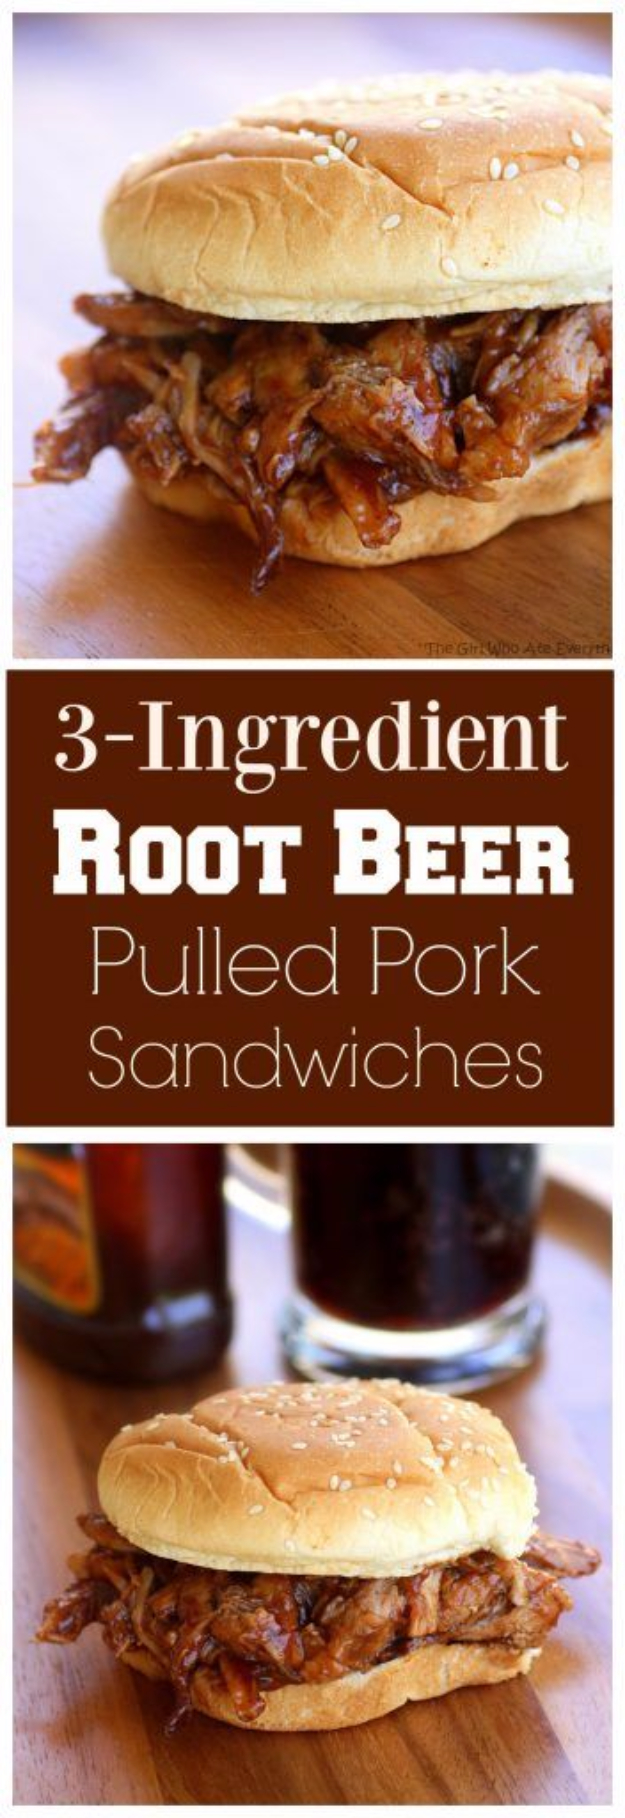 33 Easy Three Ingredient Recipes - 3 Ingredient Root Beer Pulled Pork Sandwiches - Quick And Healthy 3 Ingredients Recipe Ideas for Breakfast, Lunch, Dinner, Appetizers, Snacks and Desserts - Cookies, Chicken, Crockpot Ideas, Baking and Microwave Recipes and Tutorials #easyrecipes #quickrecipes